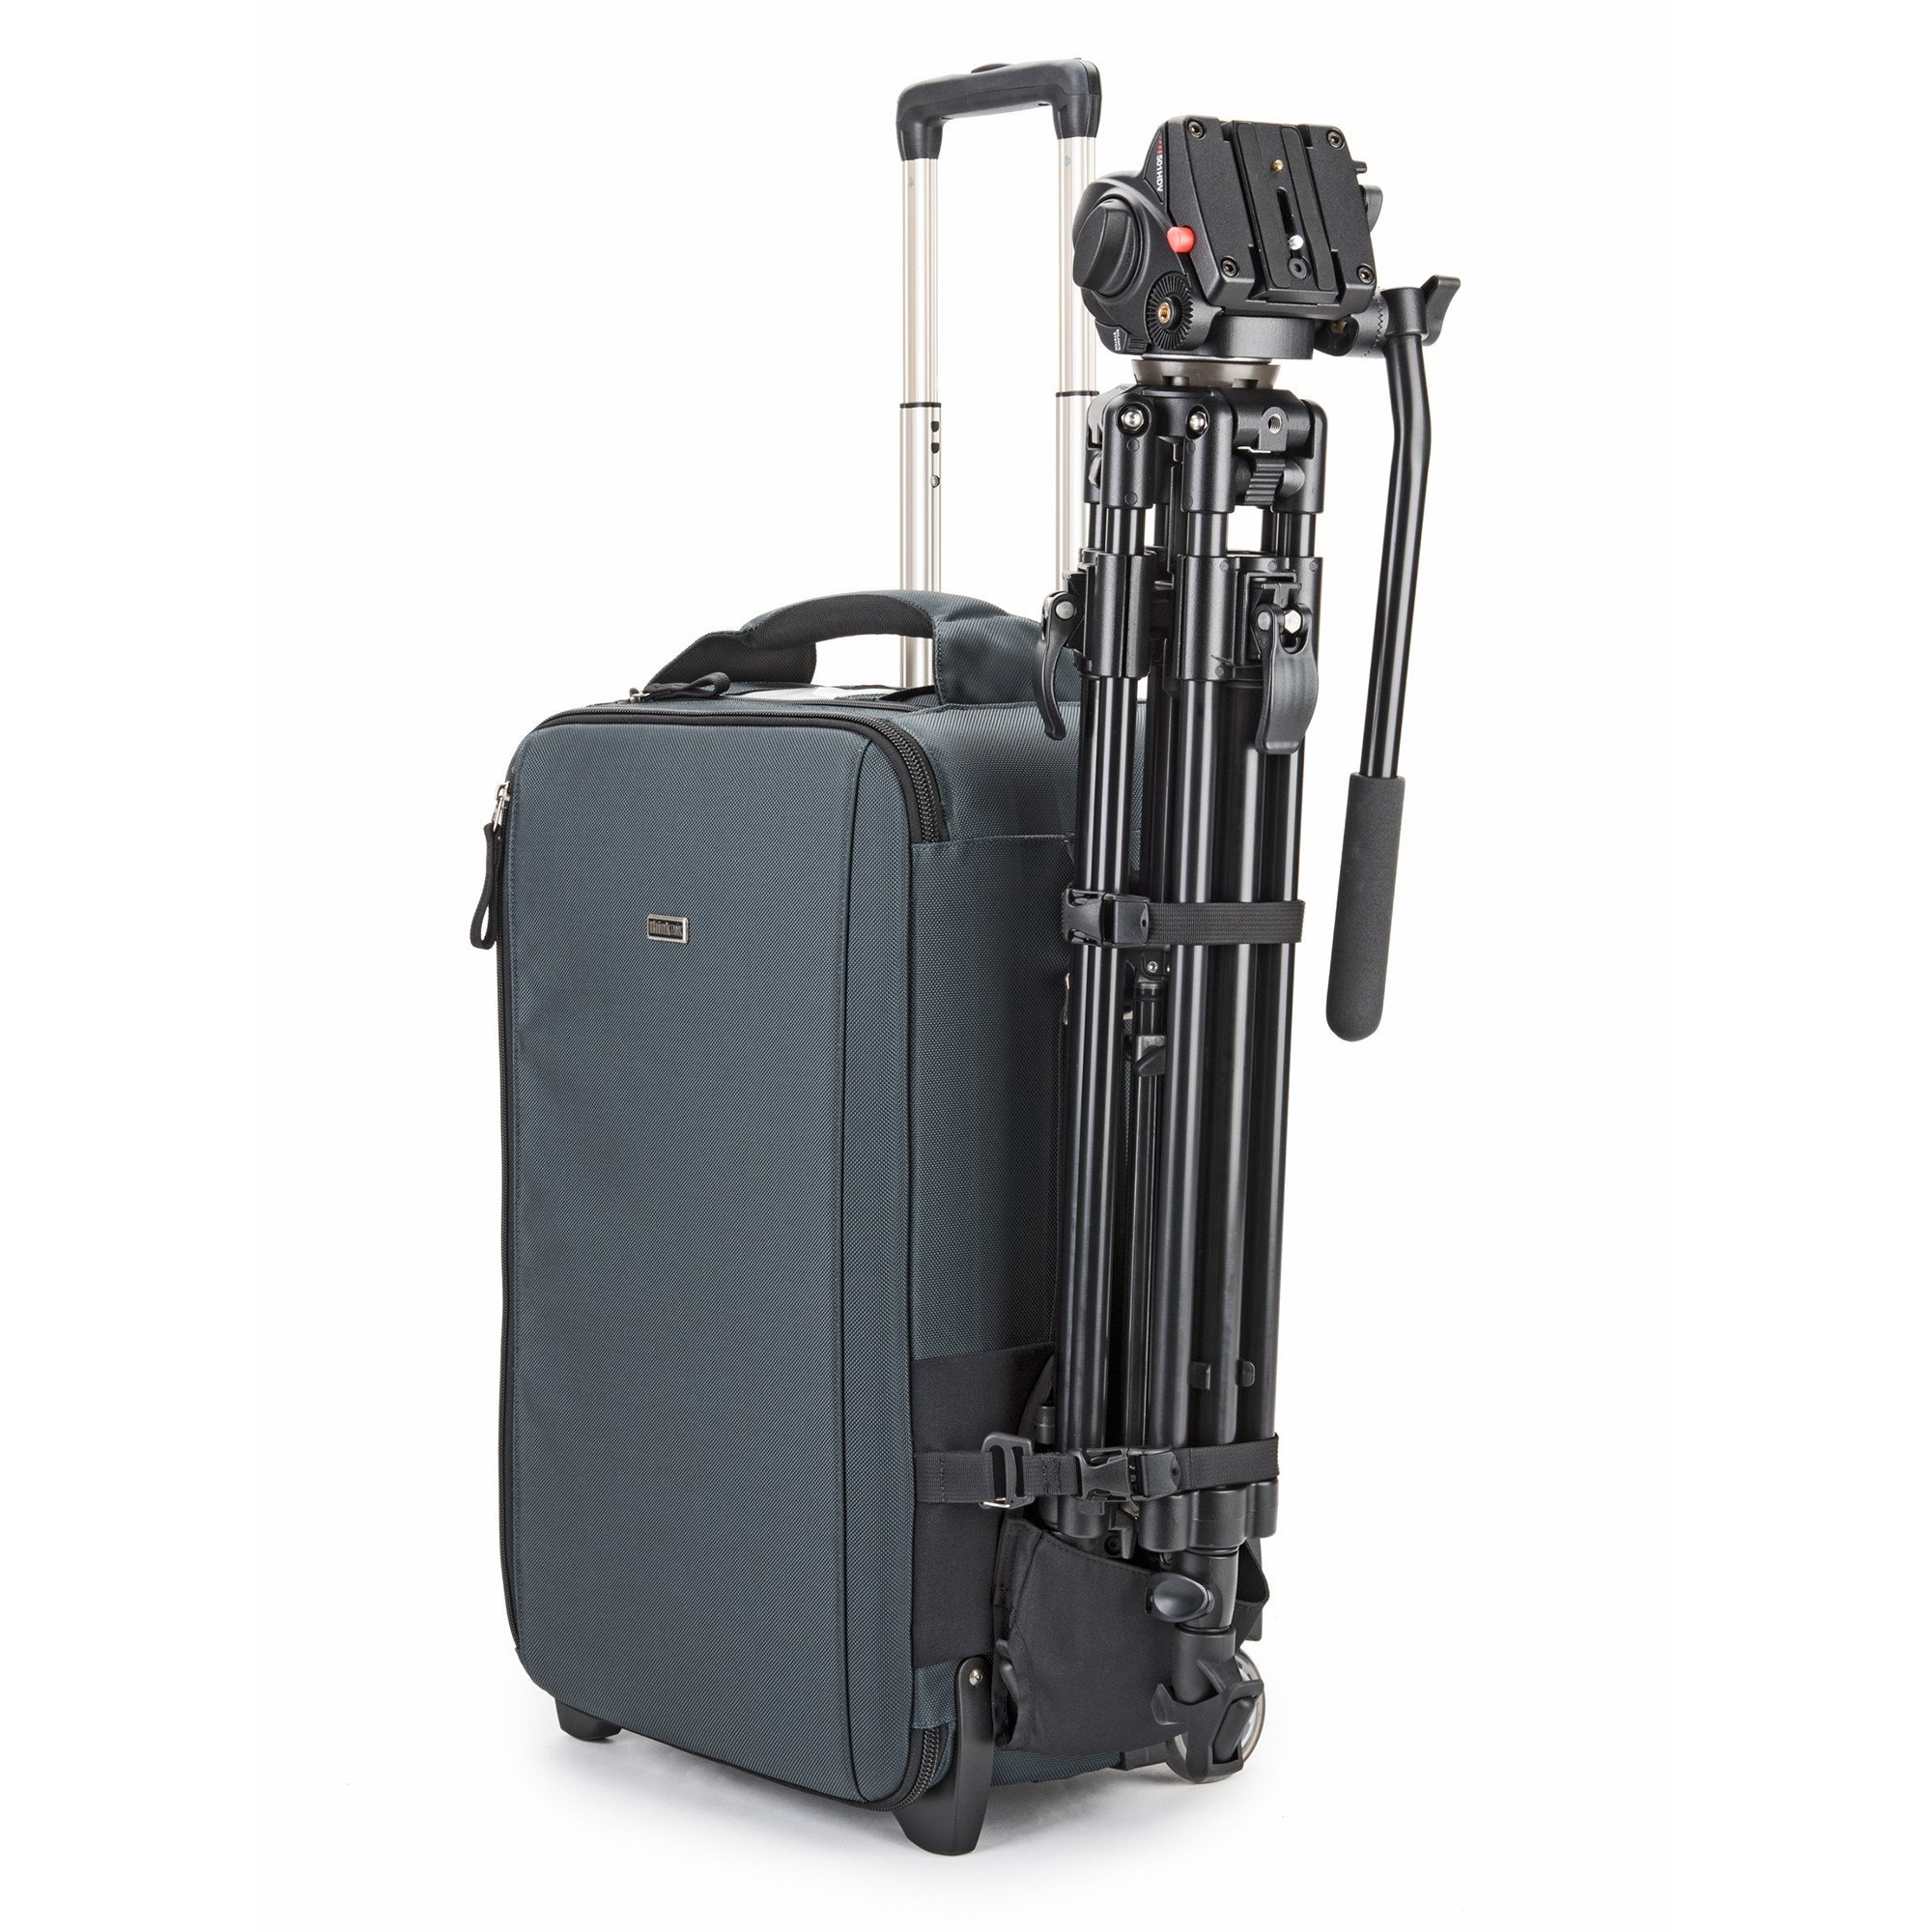 Think Tank Photo Video Transport 20 Carry-On Case (Pacific Slate) by Think Tank (Image #4)